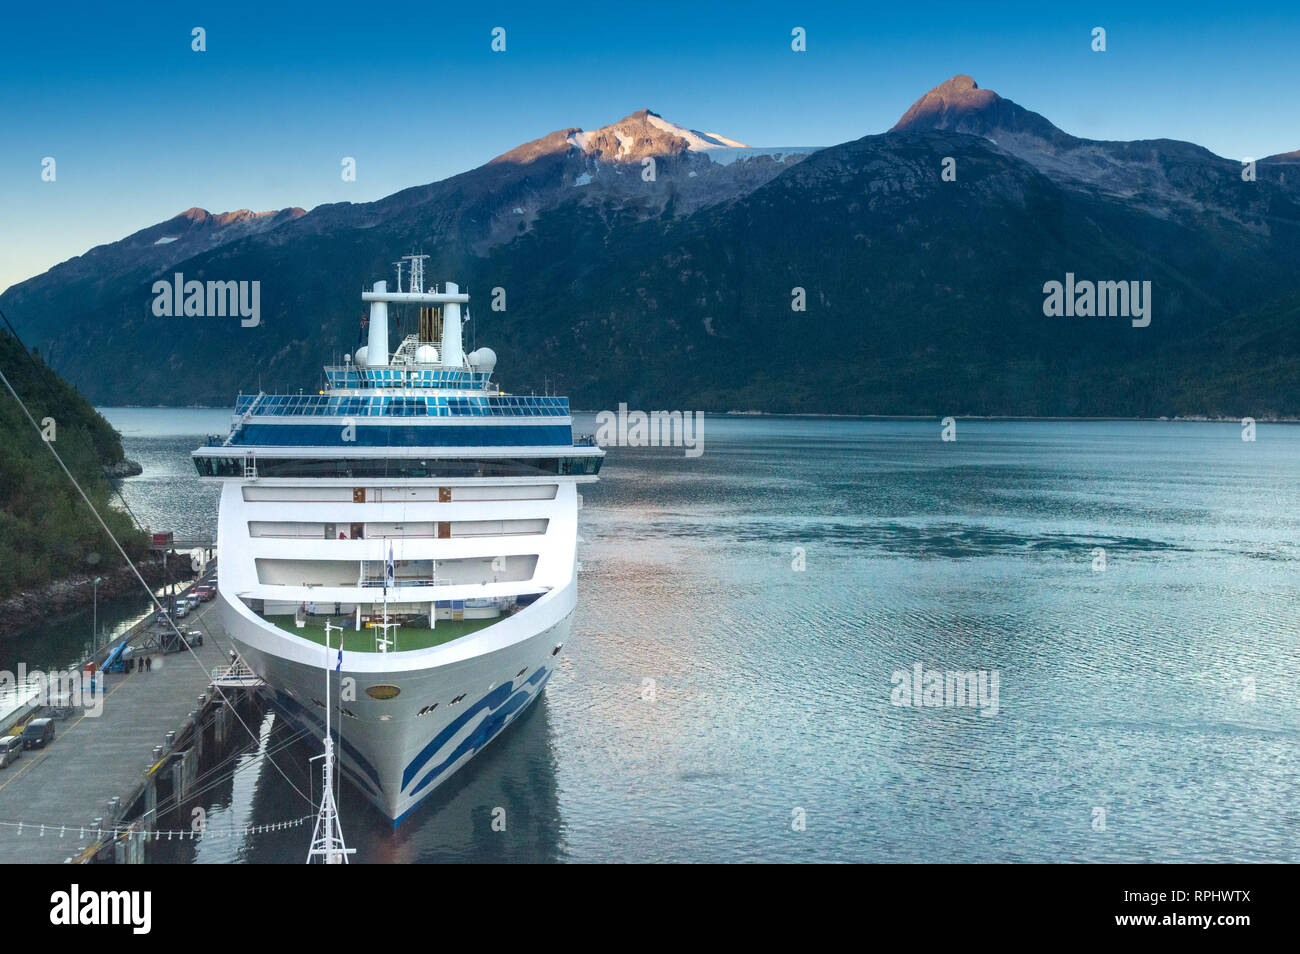 September 15, 2018 - Skagway, AK: A Princess Cruises ship docking at port in the early morning. Photographed from Holland America's The Volendam. - Stock Image